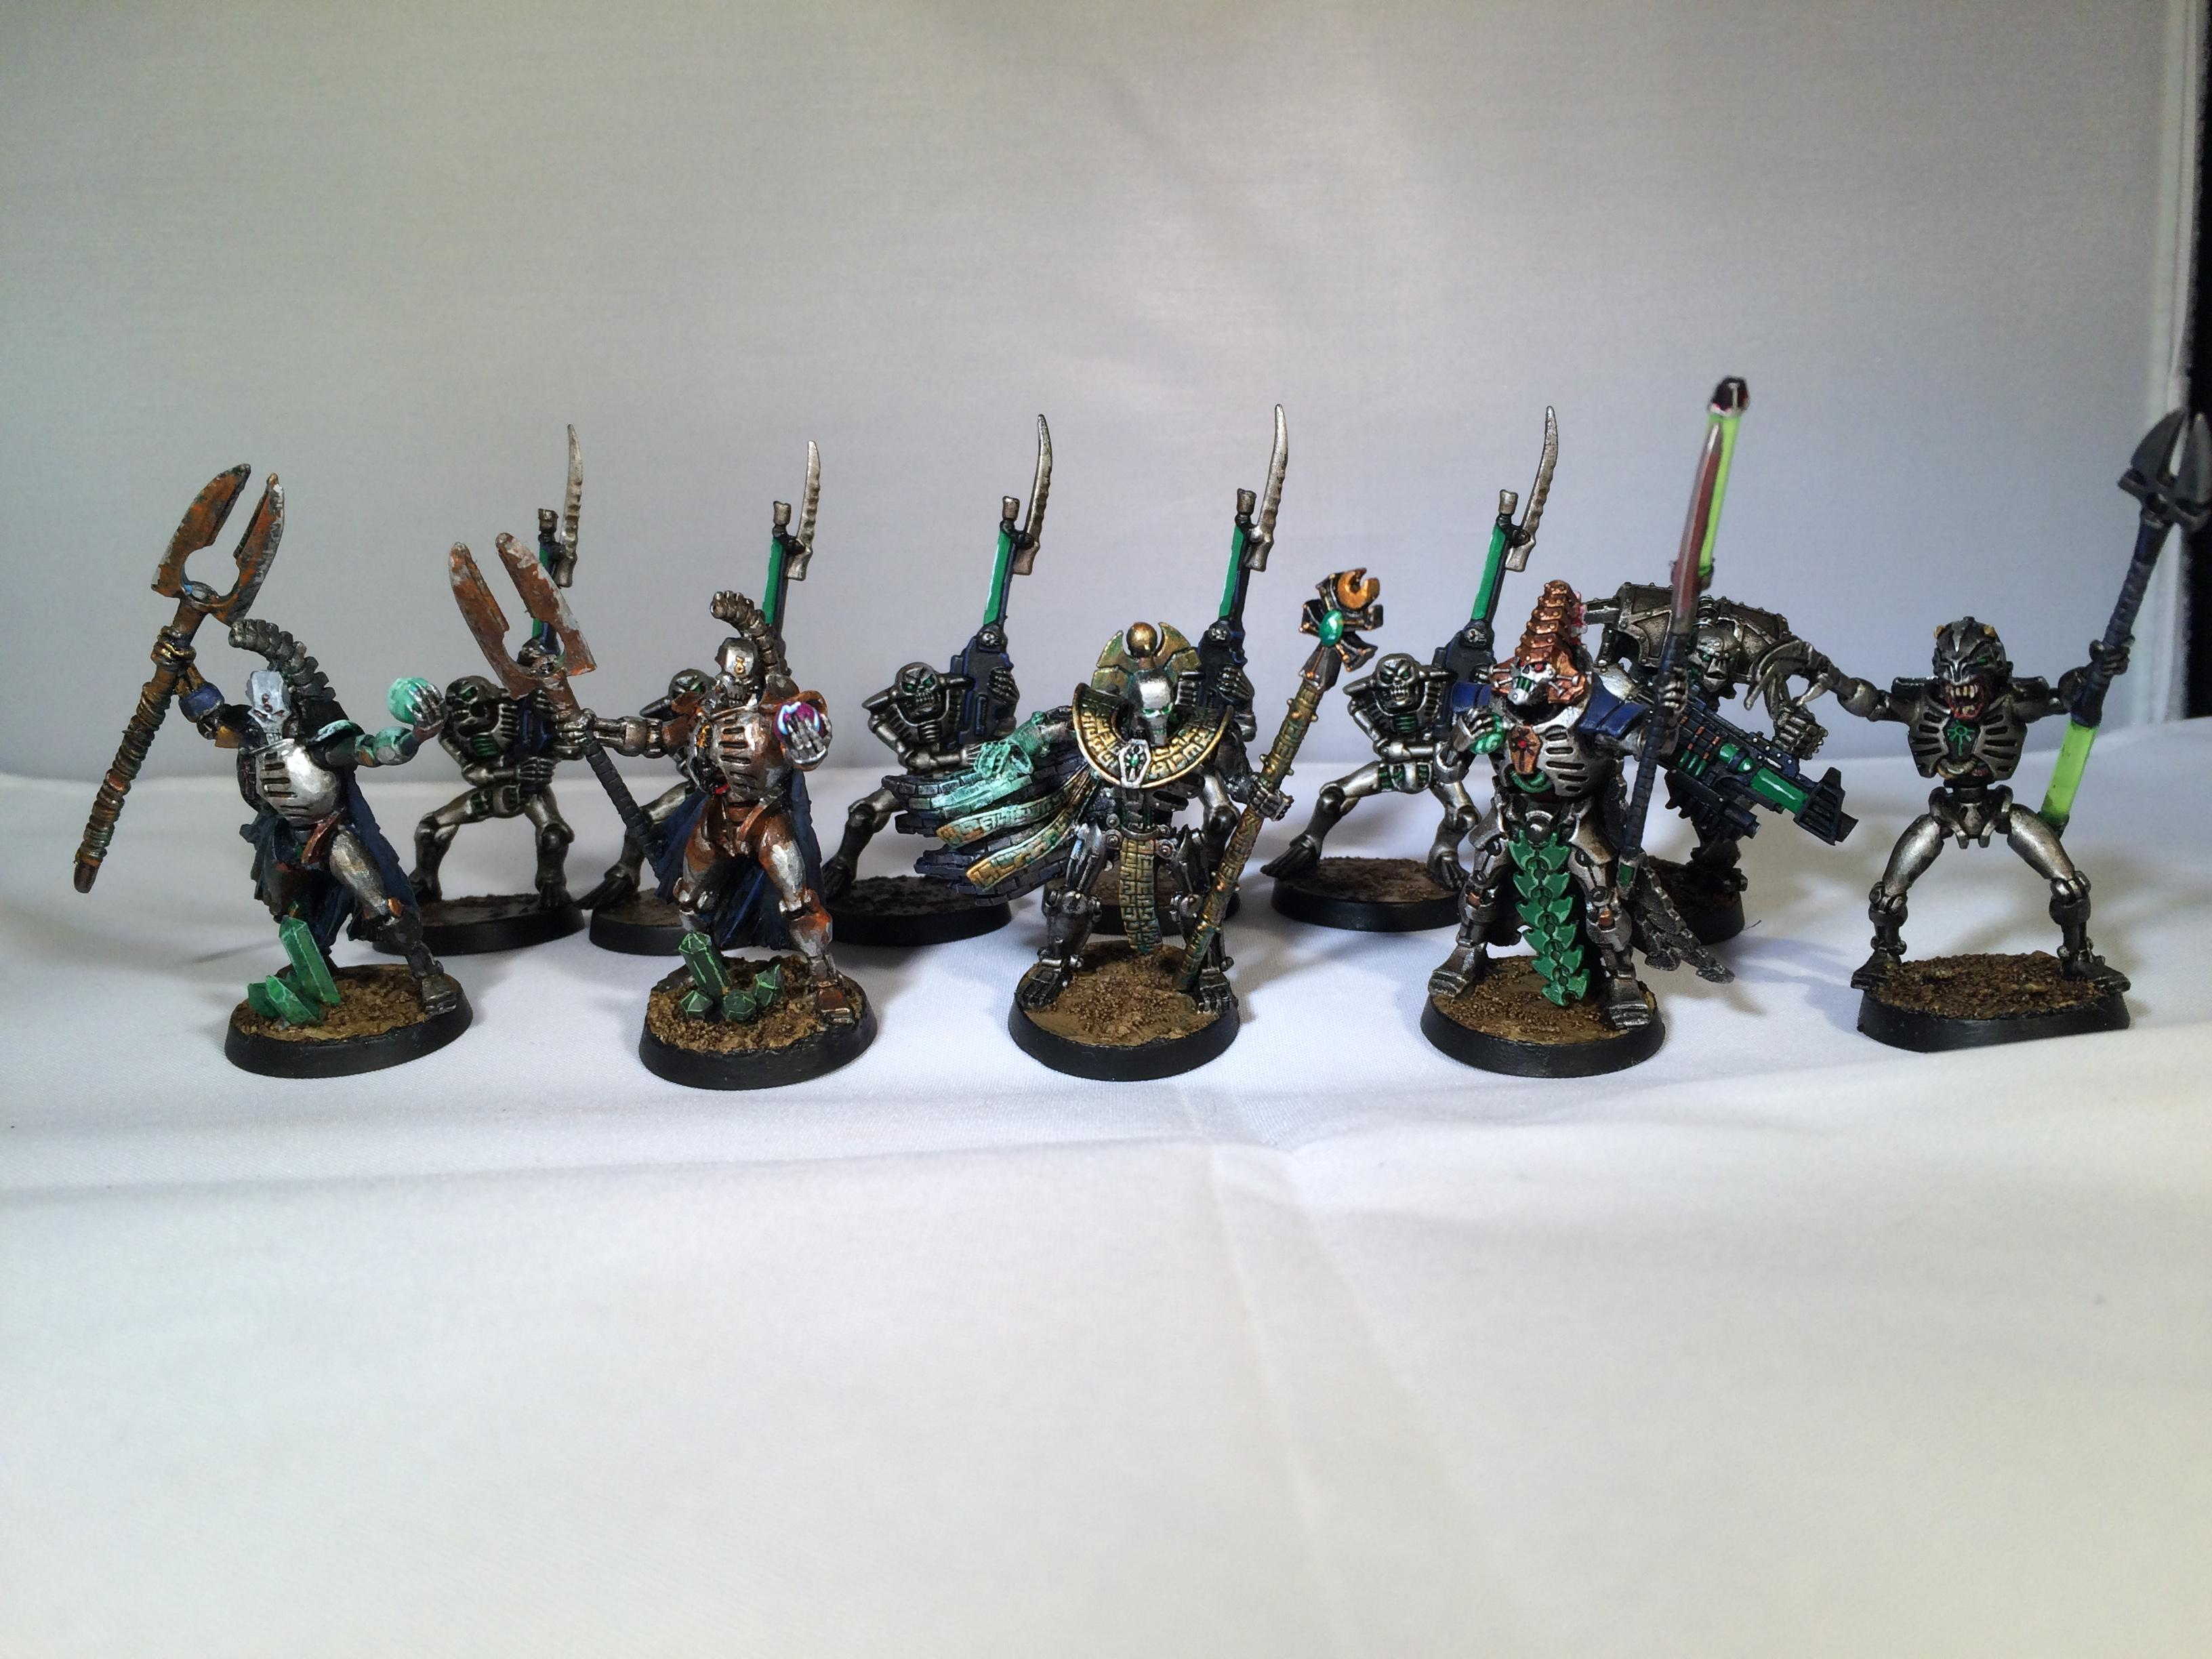 Android, Conversion, Lord, Necrons, Old, Oldhammer, Photo Box Test, Quest, Rogue, School, Star, Starquest, Style, Trader